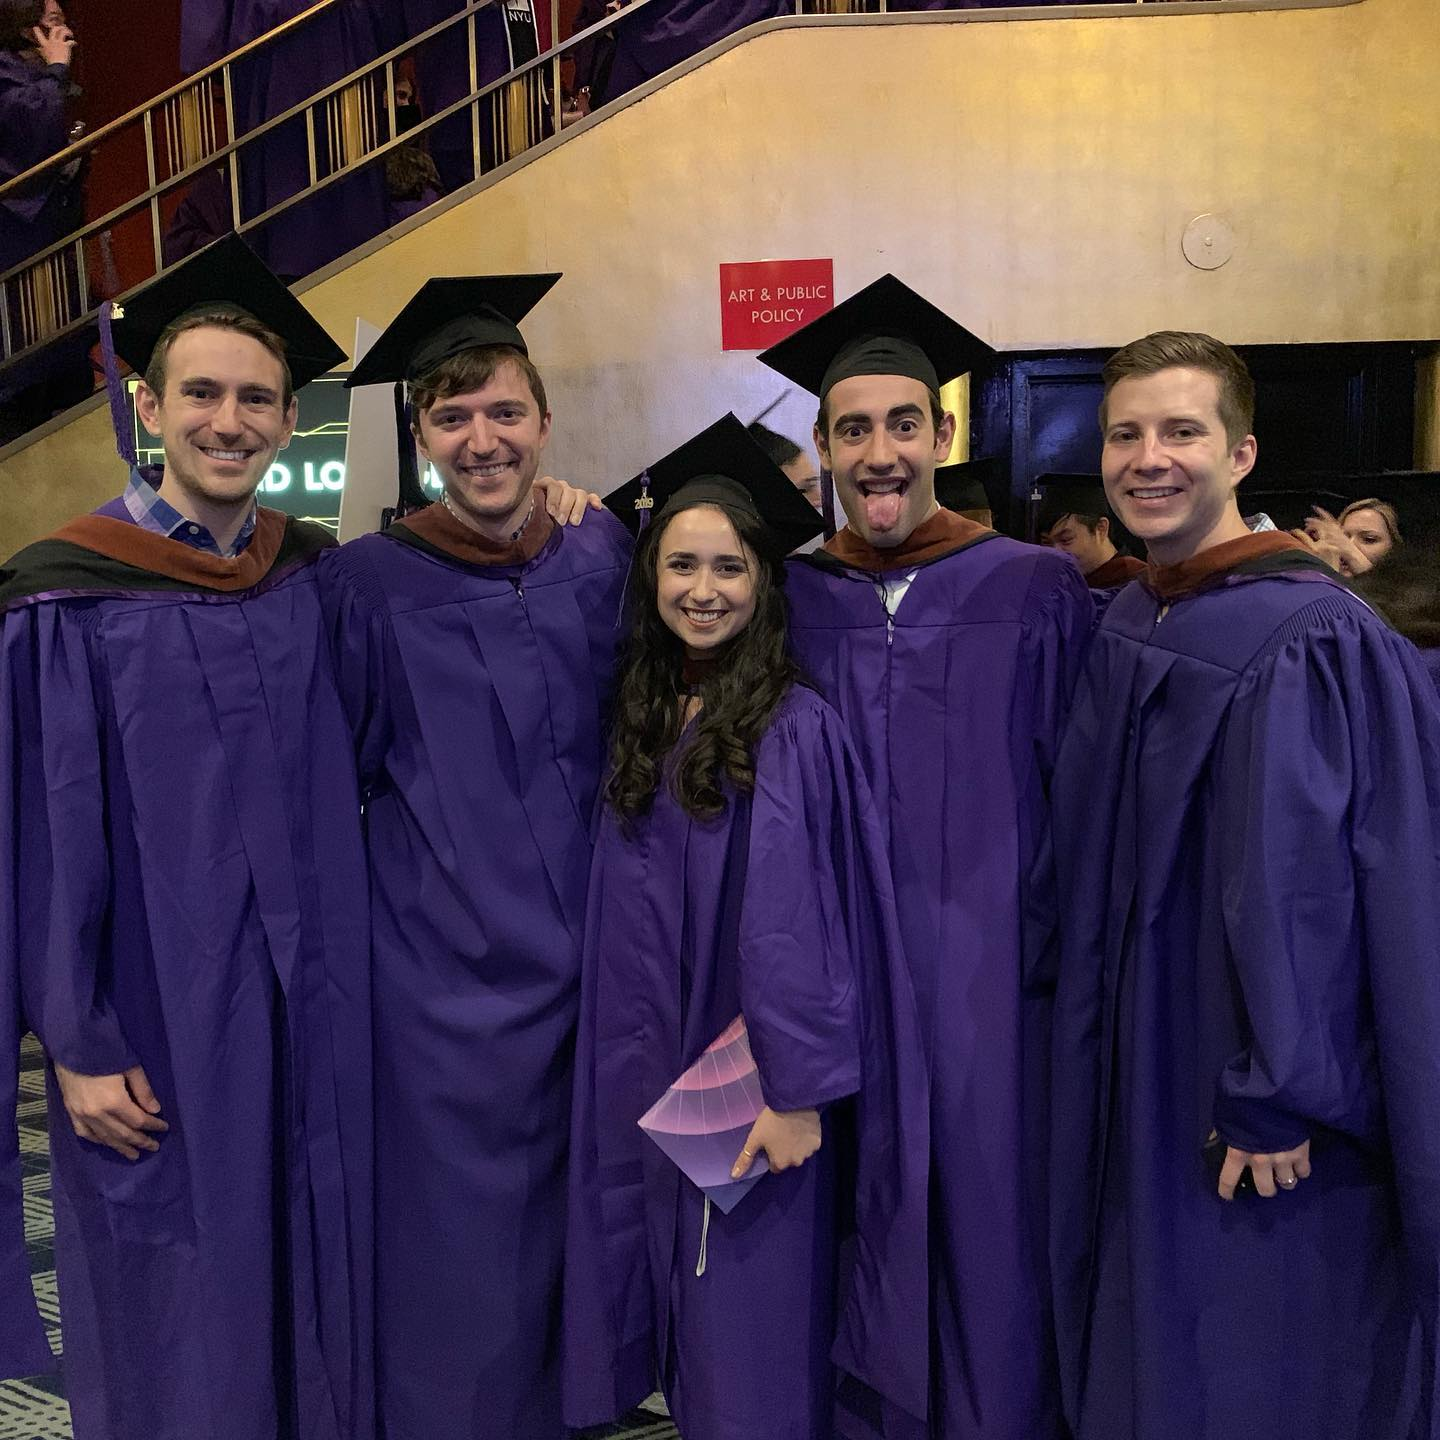 New York University Graduation